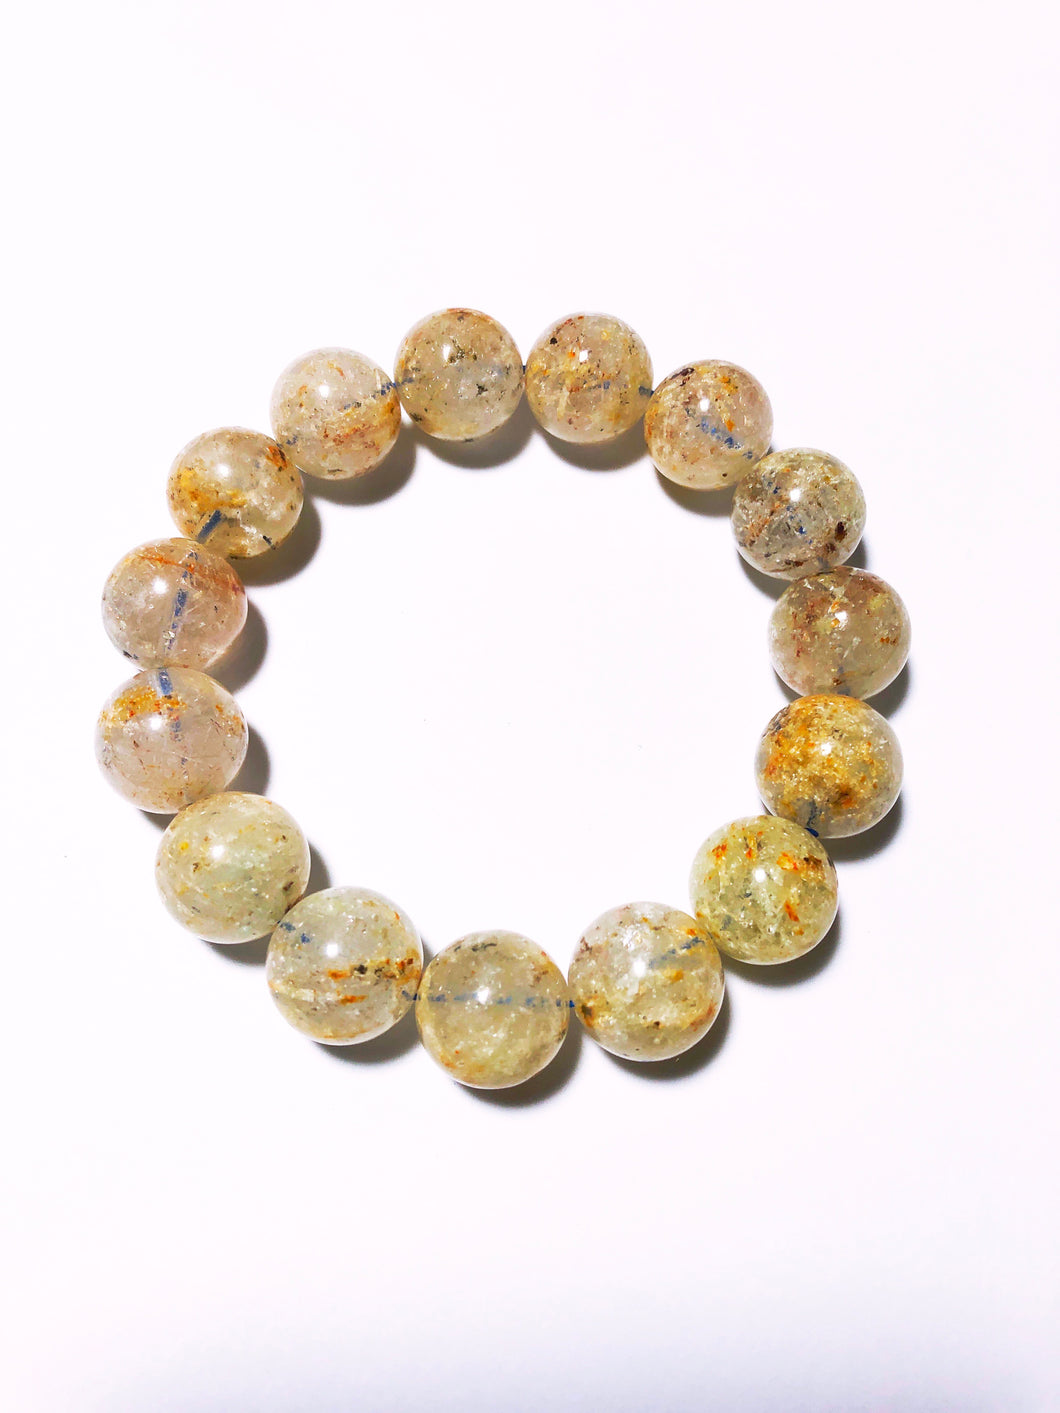 Bracelet with Rutilated Quartz